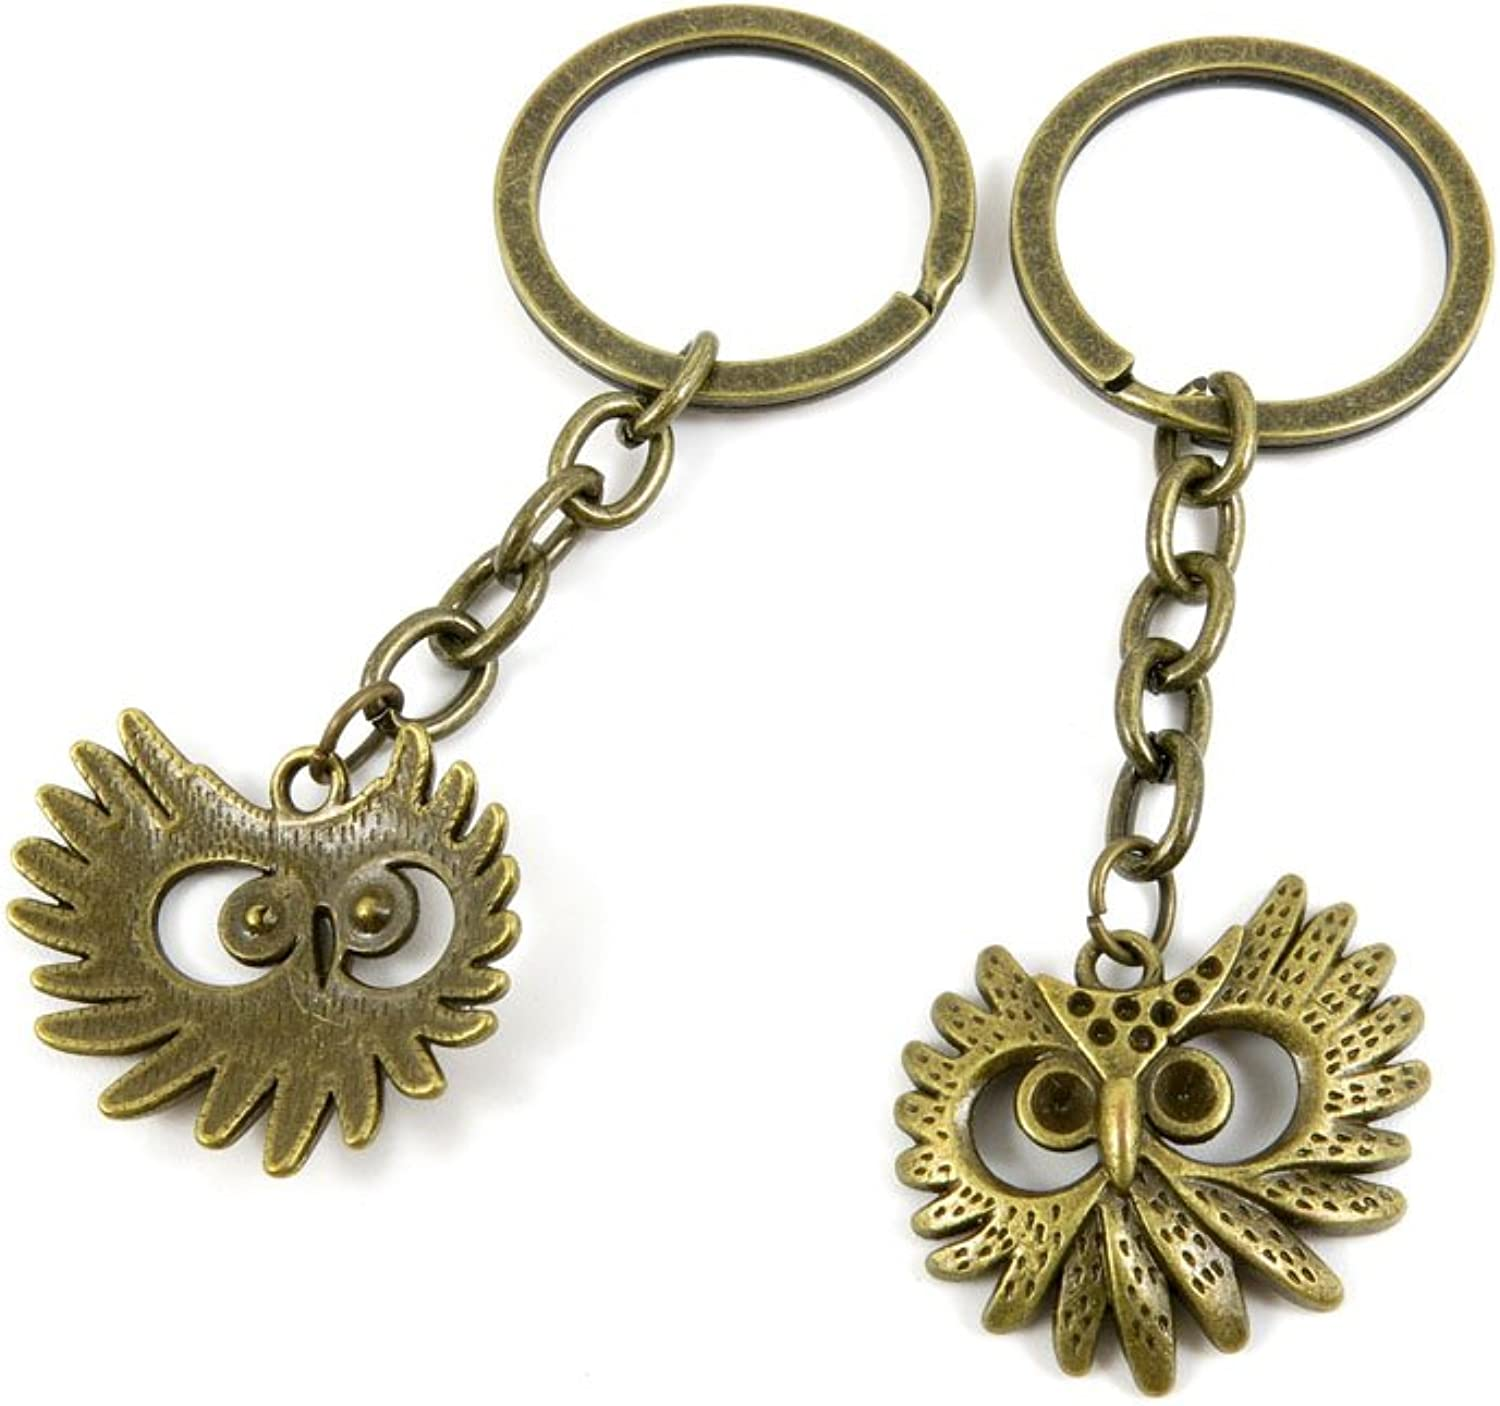 100 PCS Keyrings Keychains Key Ring Chains Tags Jewelry Findings Clasps Buckles Supplies X9FN6 Owl